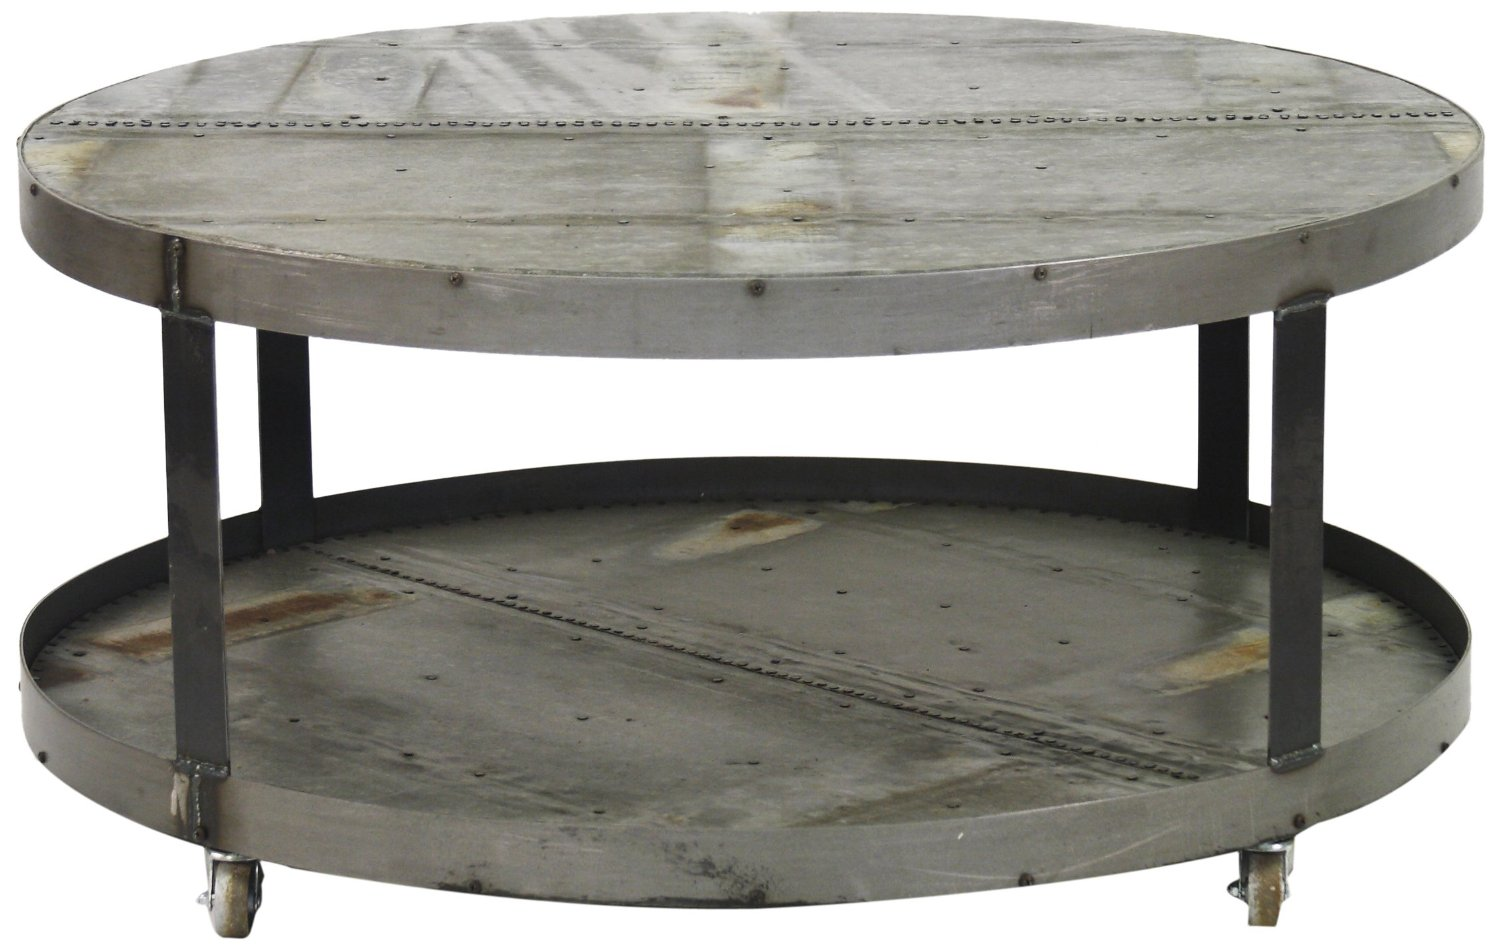 Round Coffee Table With Wheels Coffee Table On Wheels Zentique Recycled Metal Round Coffee Table With Wheels (Image 6 of 10)